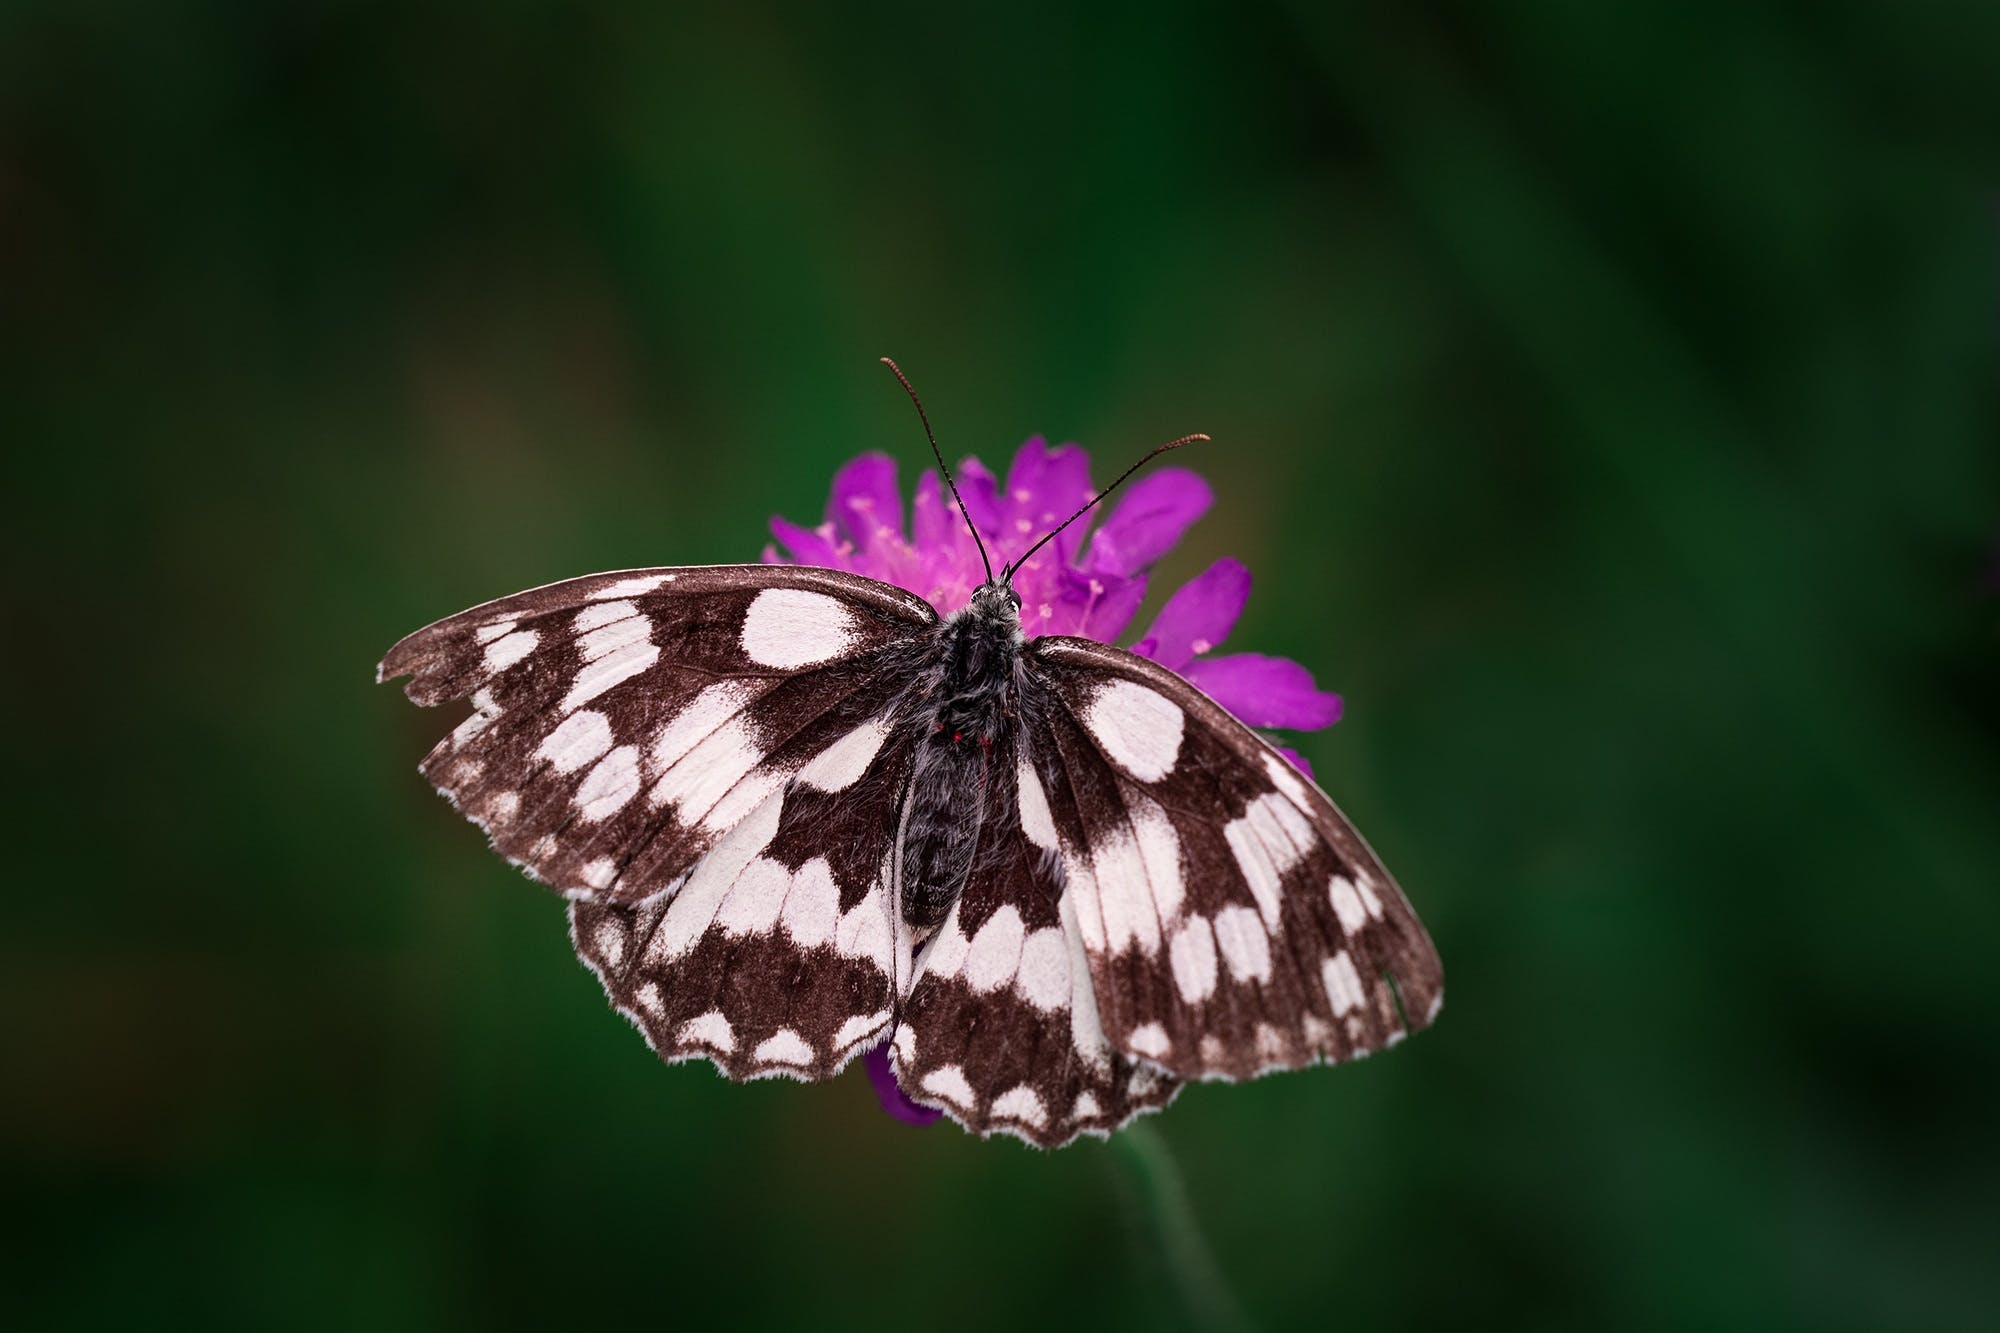 Tilt Shift Photography of Black and White Butterfly